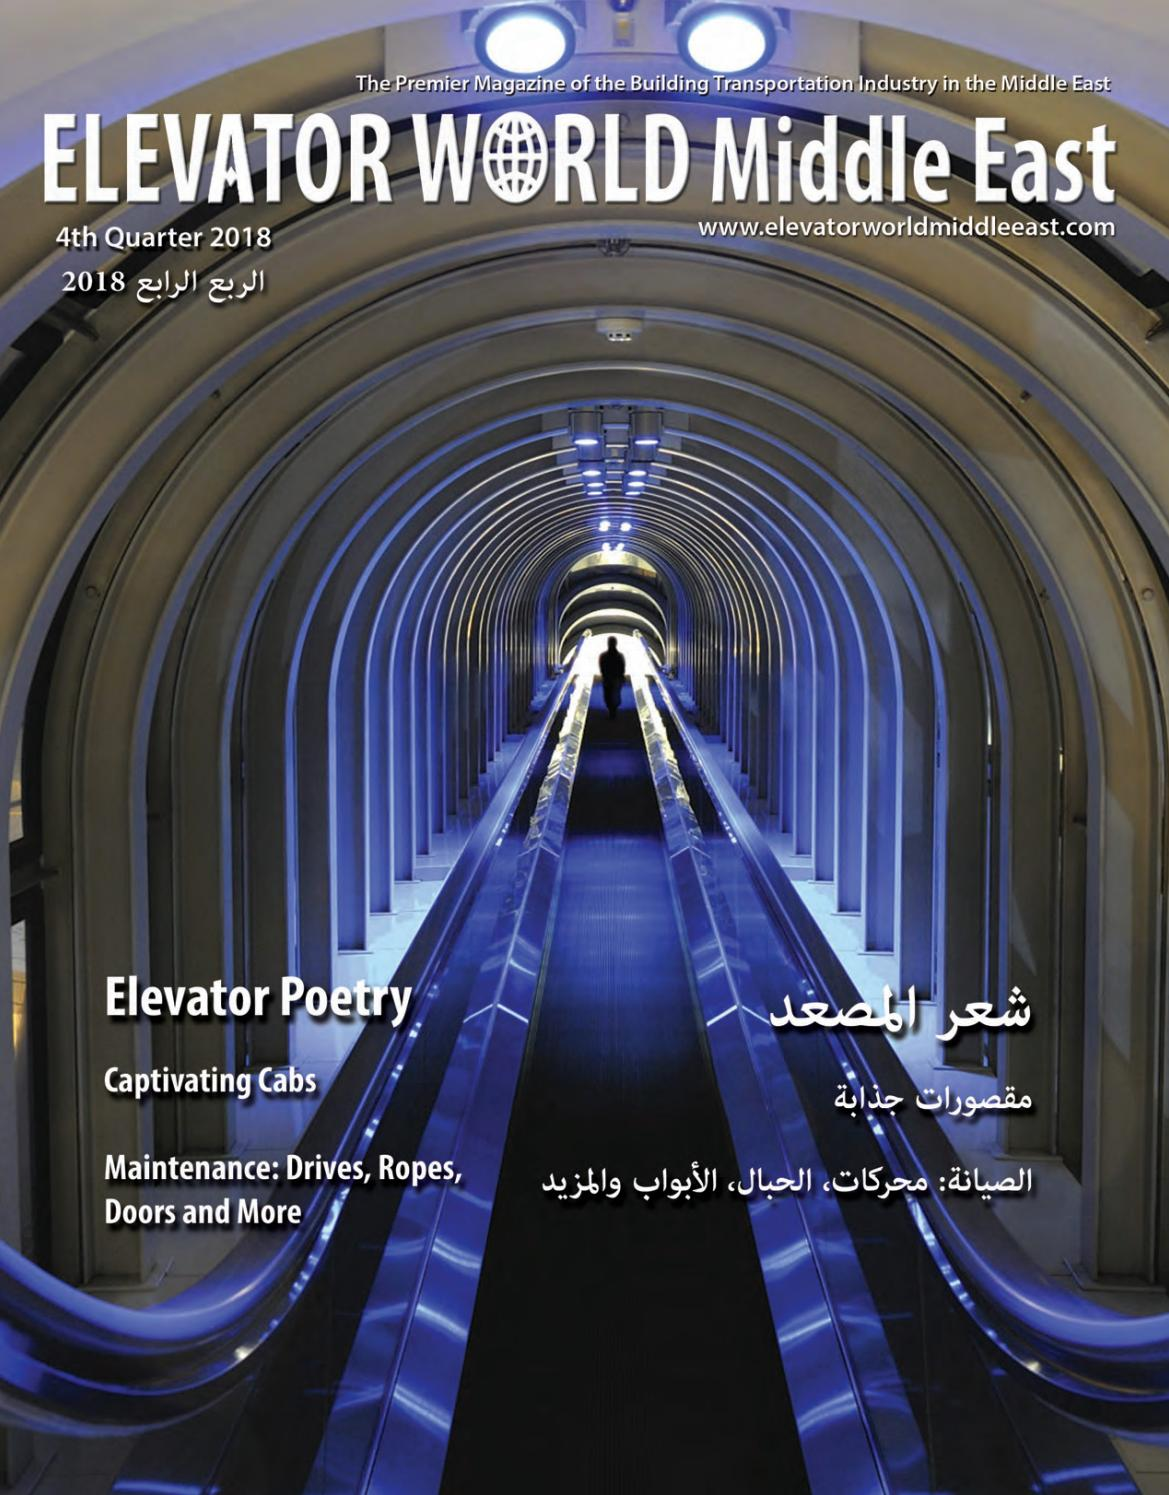 ab5236d146c82 ELEVATOR WORLD Middle East by Elevator World - issuu